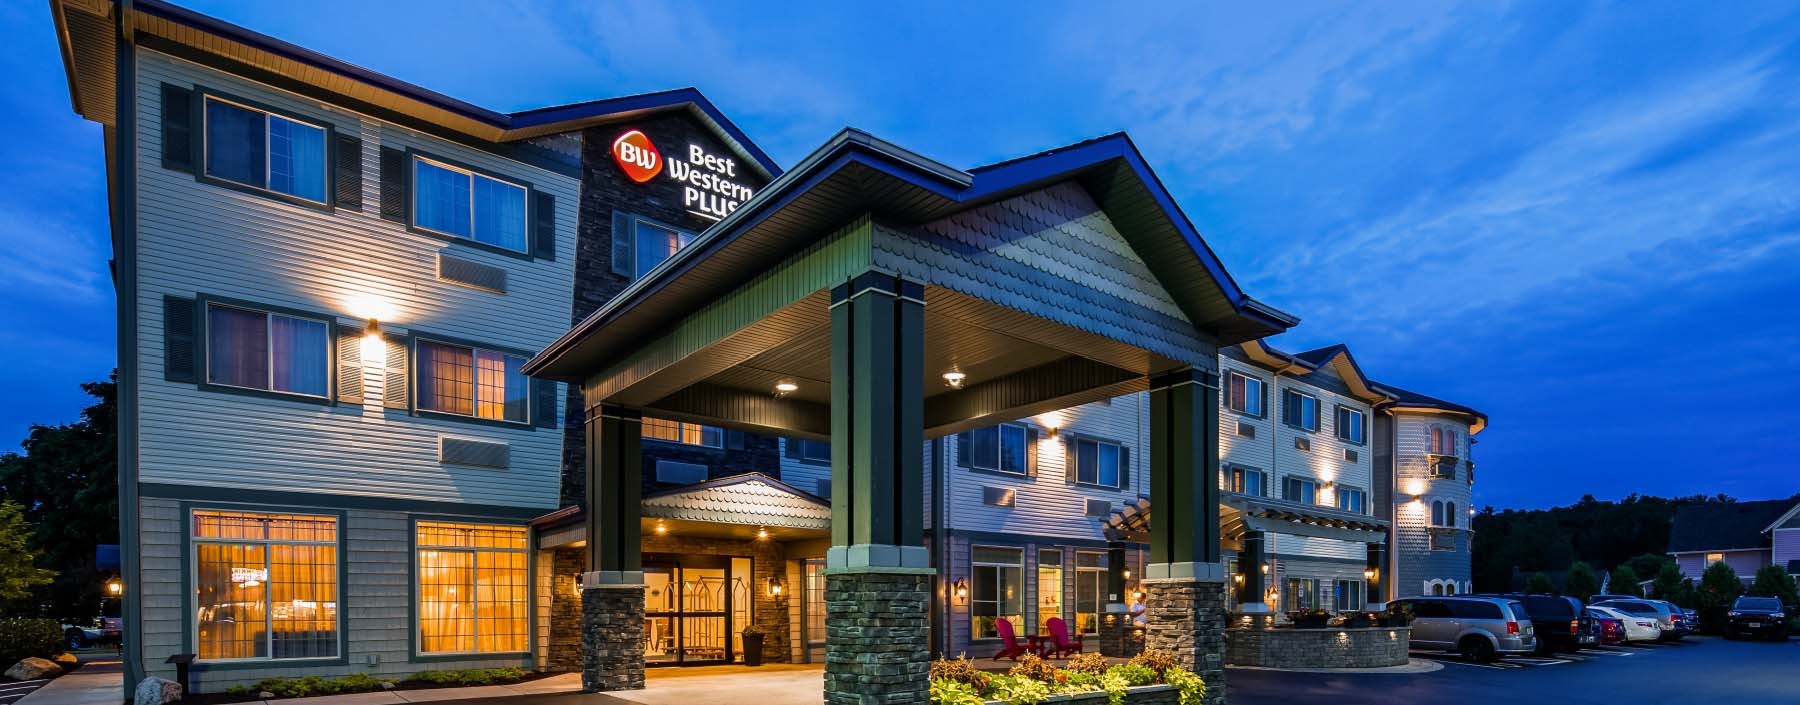 The Award-winning best western plus vineyard inn and suites situated a 1.2 mile from Keuka Lake